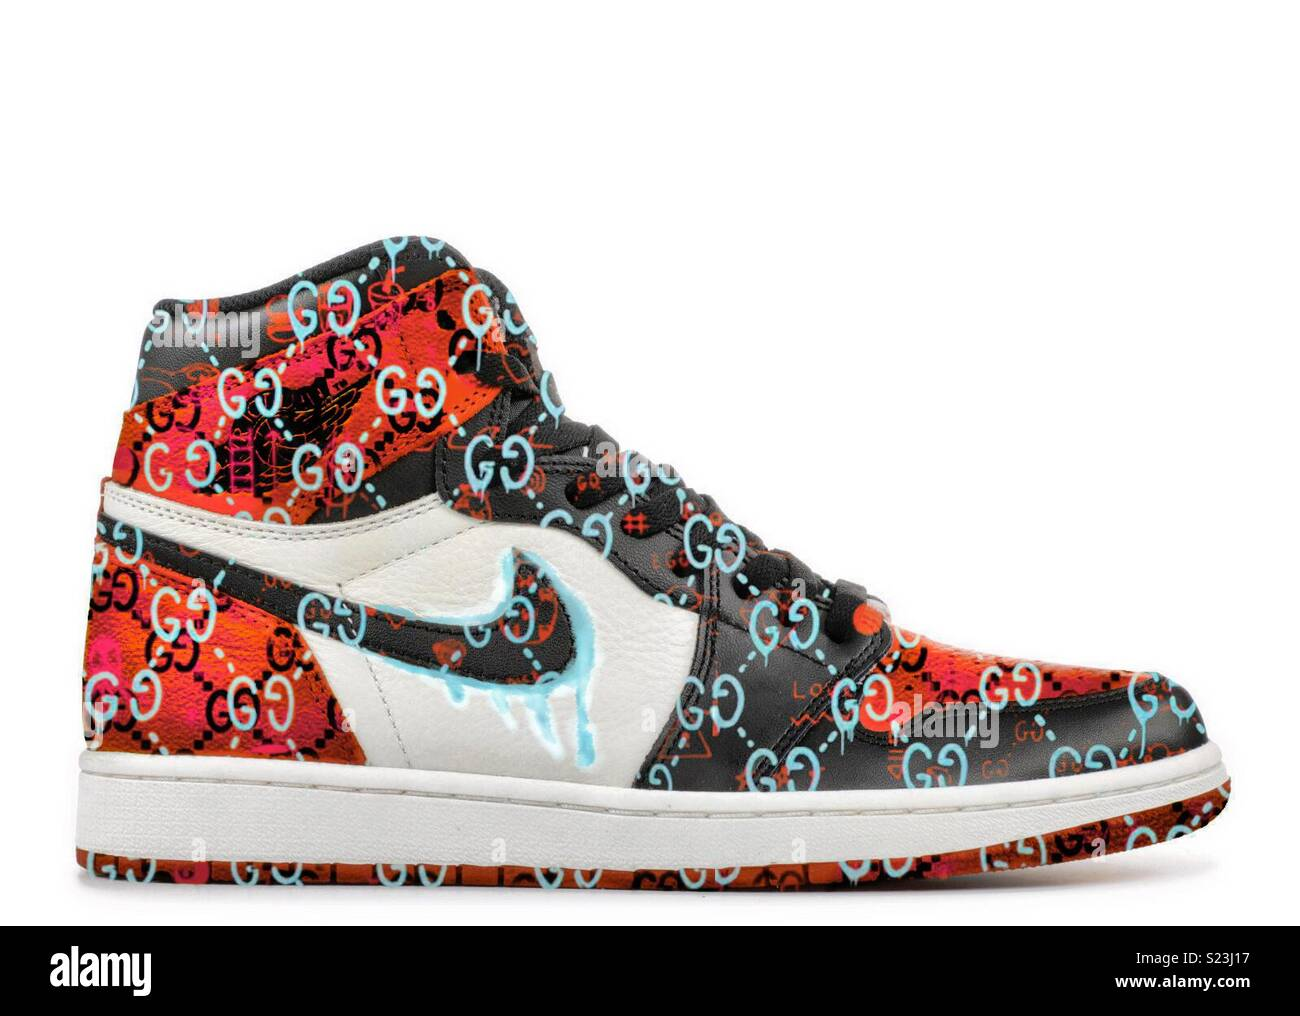 b3f117e56164 Gucci Shoes Stock Photos   Gucci Shoes Stock Images - Alamy